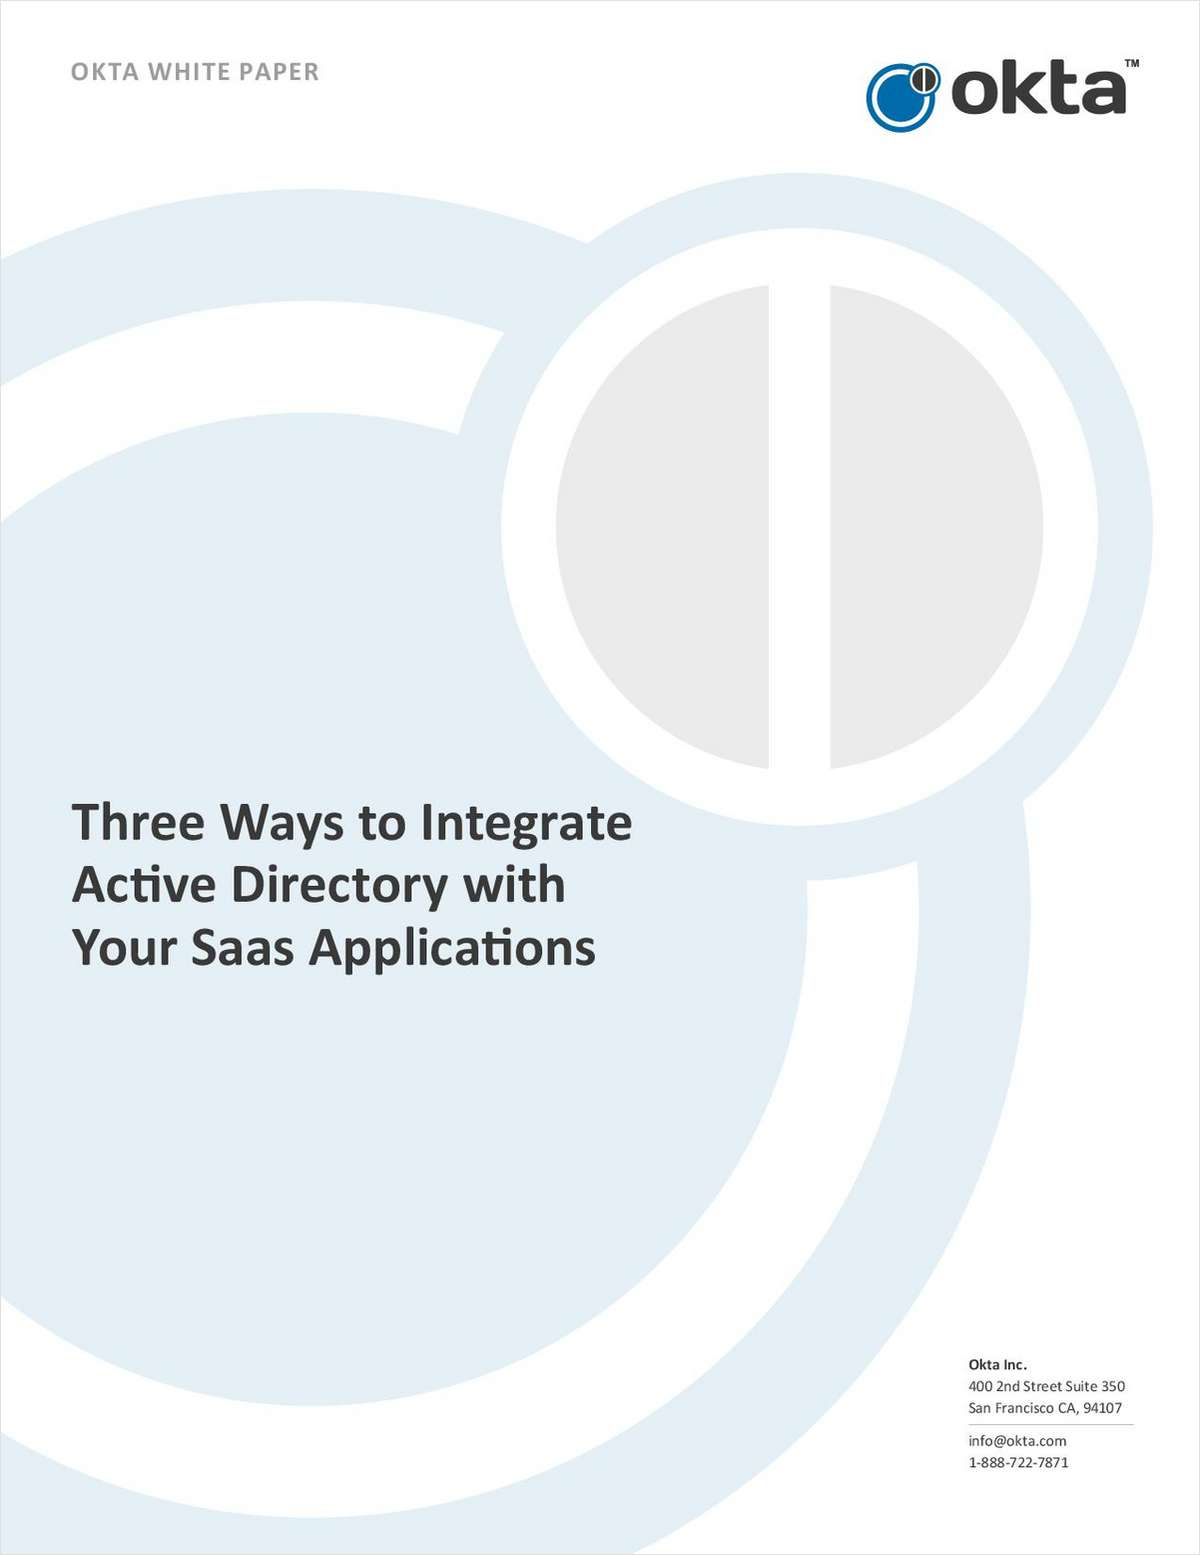 Three Ways to Integrate Active Directory with Your SaaS Applications